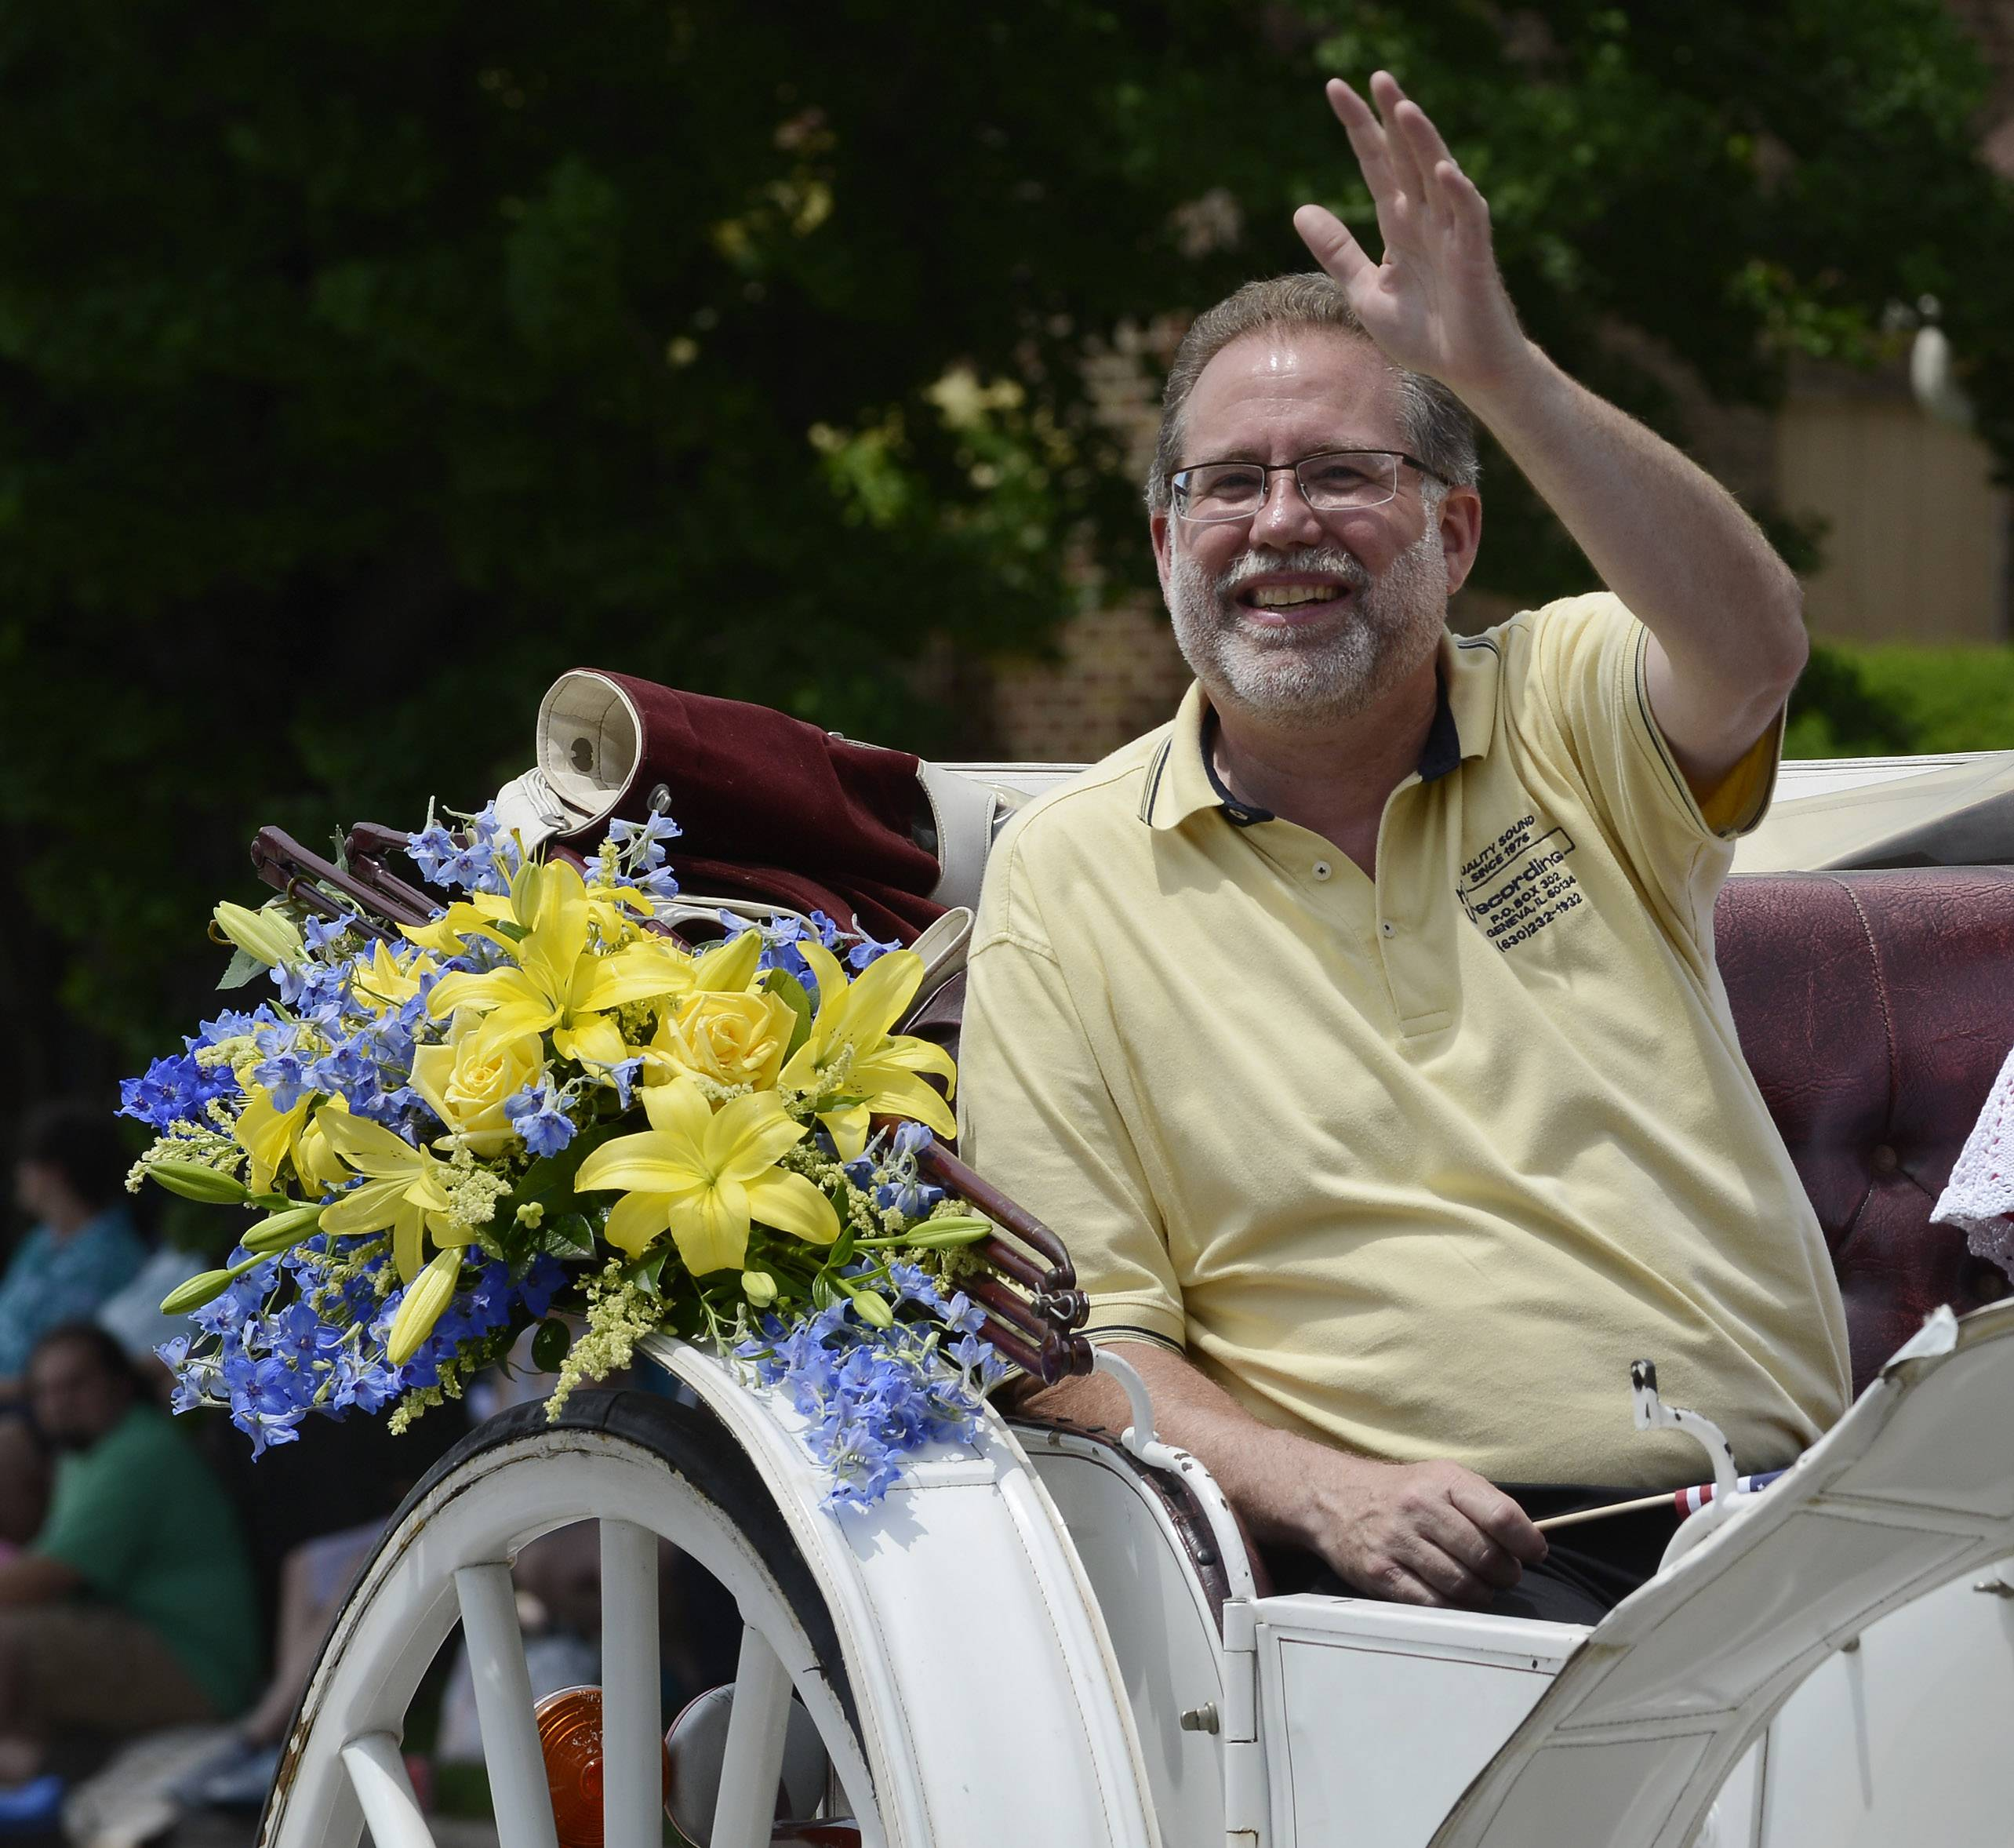 Parade Marshal Richard Peck waves to the crowd Sunday while riding in a horse-drawn carriage during the Swedish Days parade in downtown Geneva. This year was the 65th edition of the annual summer festival.